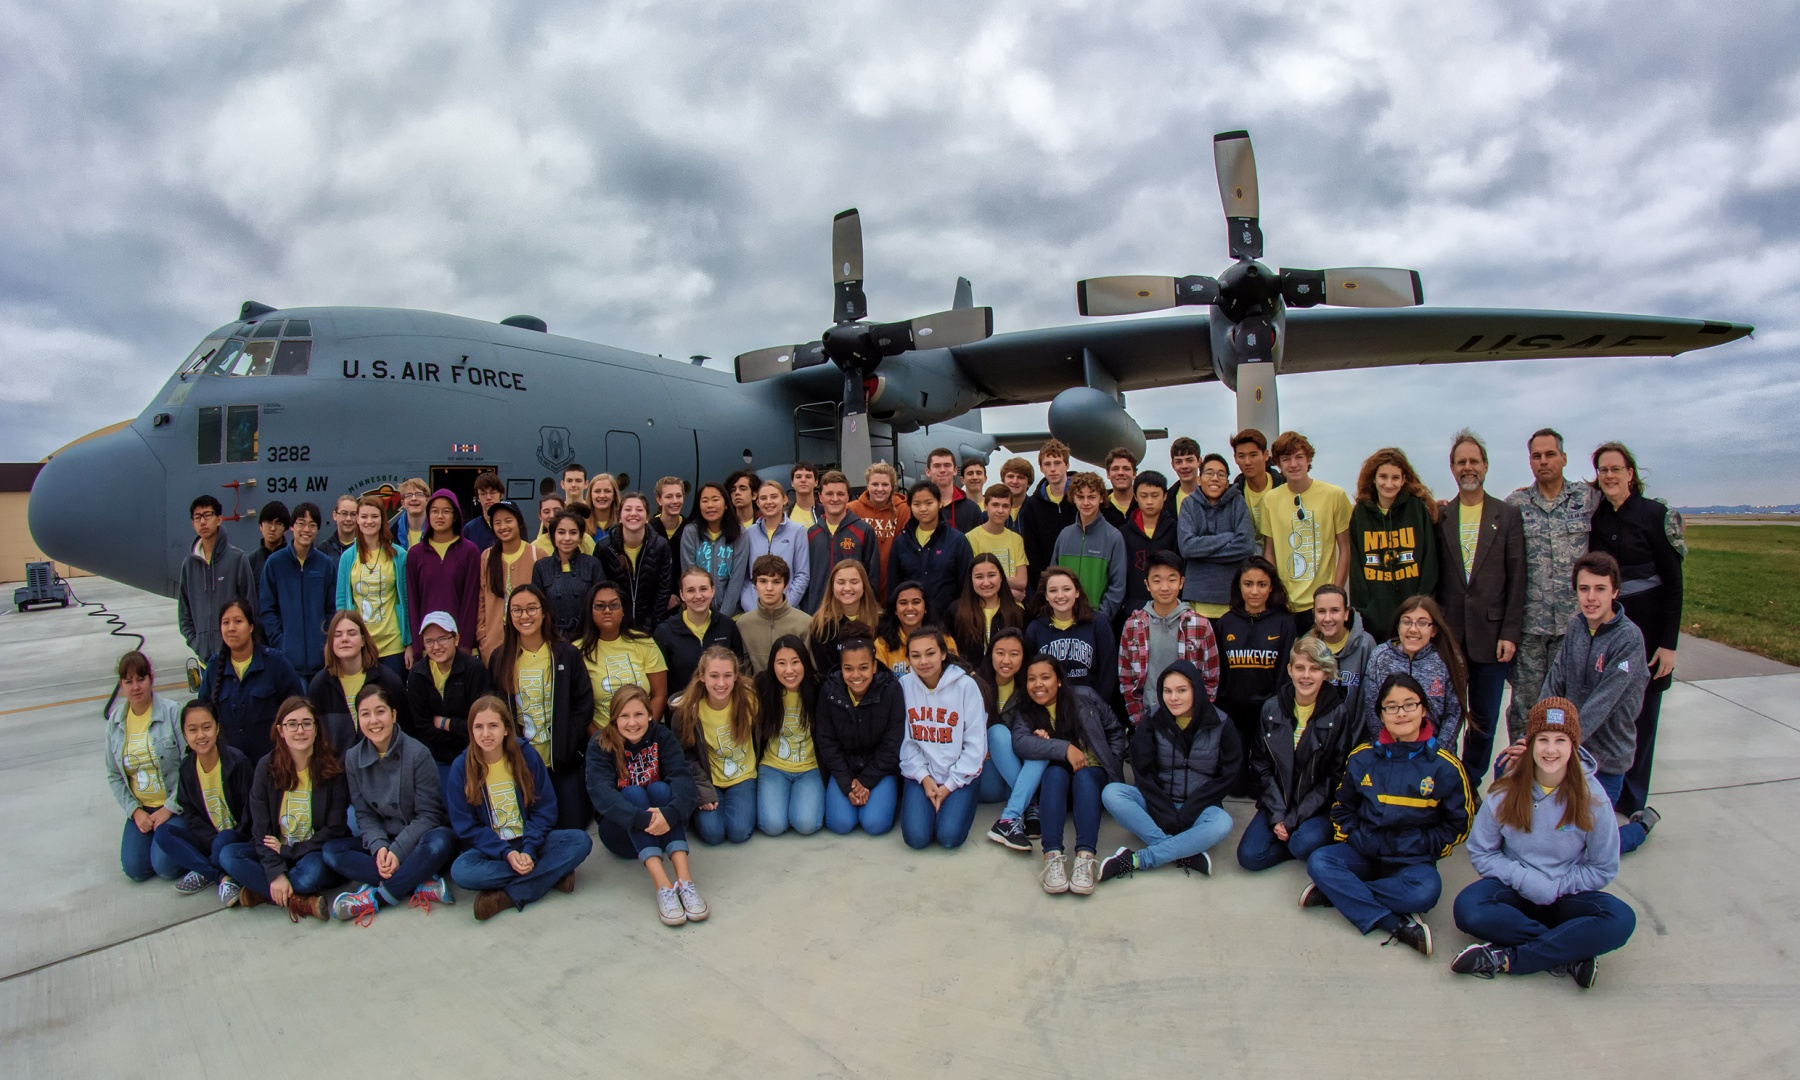 Orchestra C130 AirForce Plane